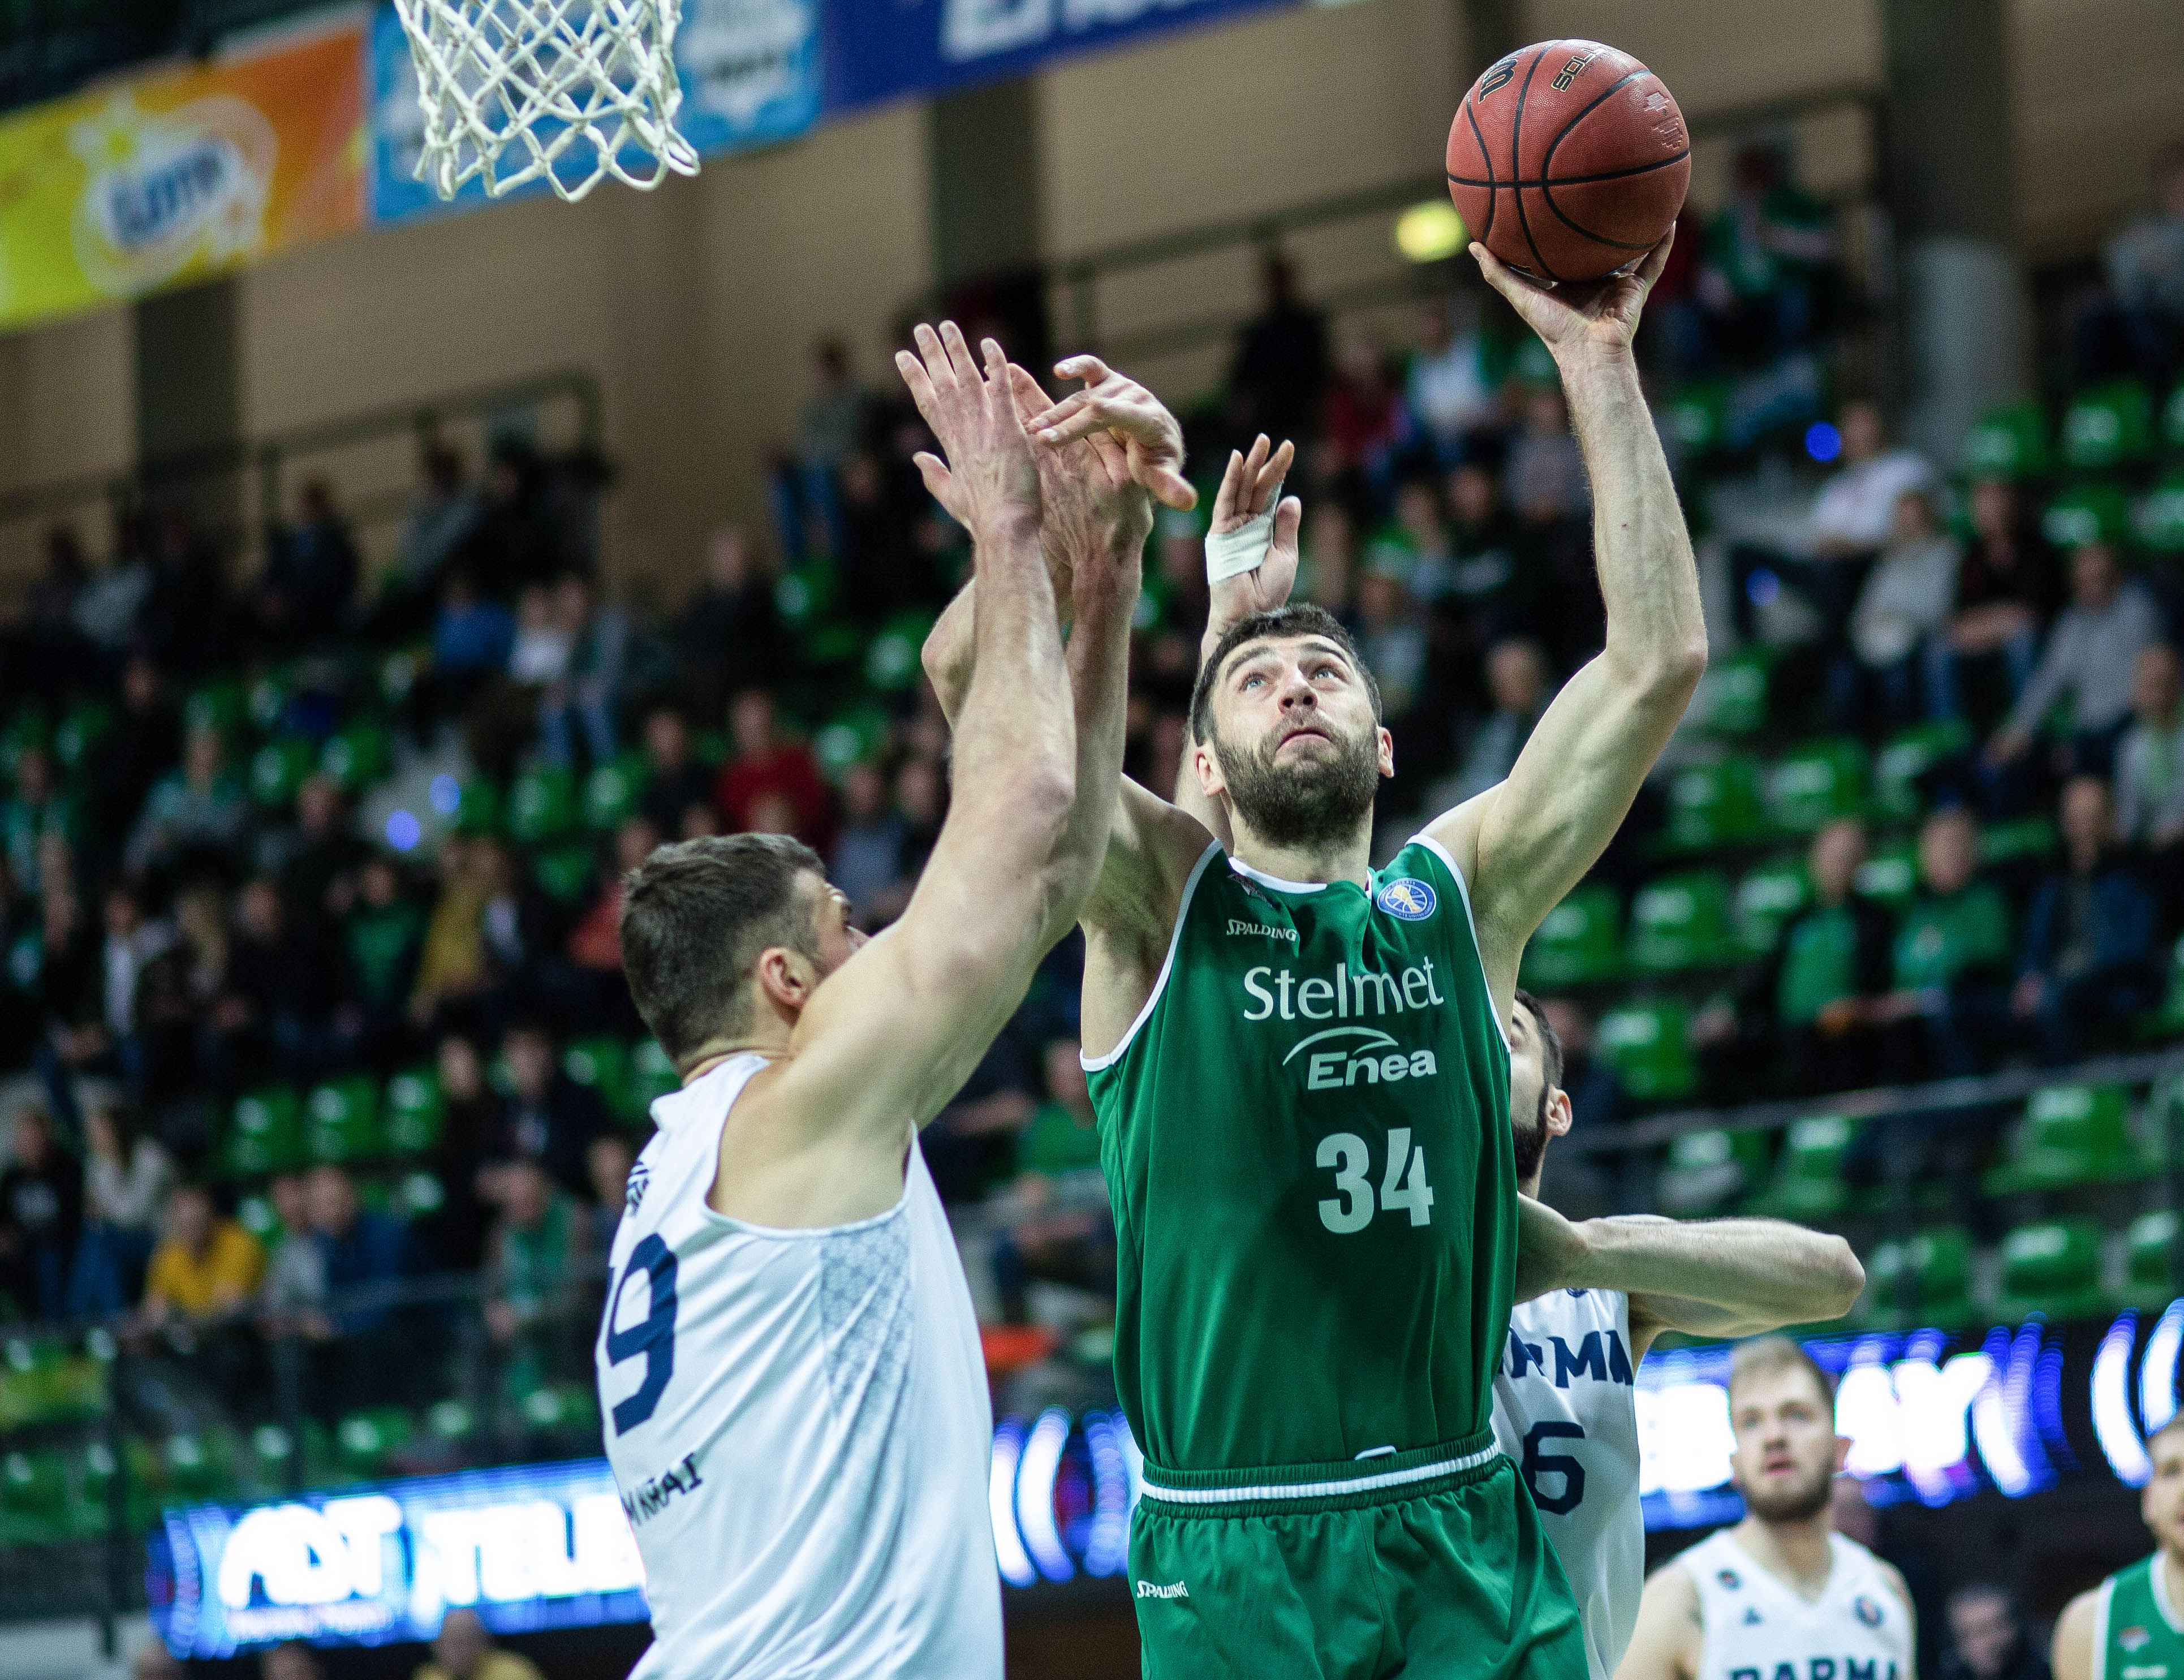 Zielona Gora Crushes PARMA To Snap 7-Game Skid